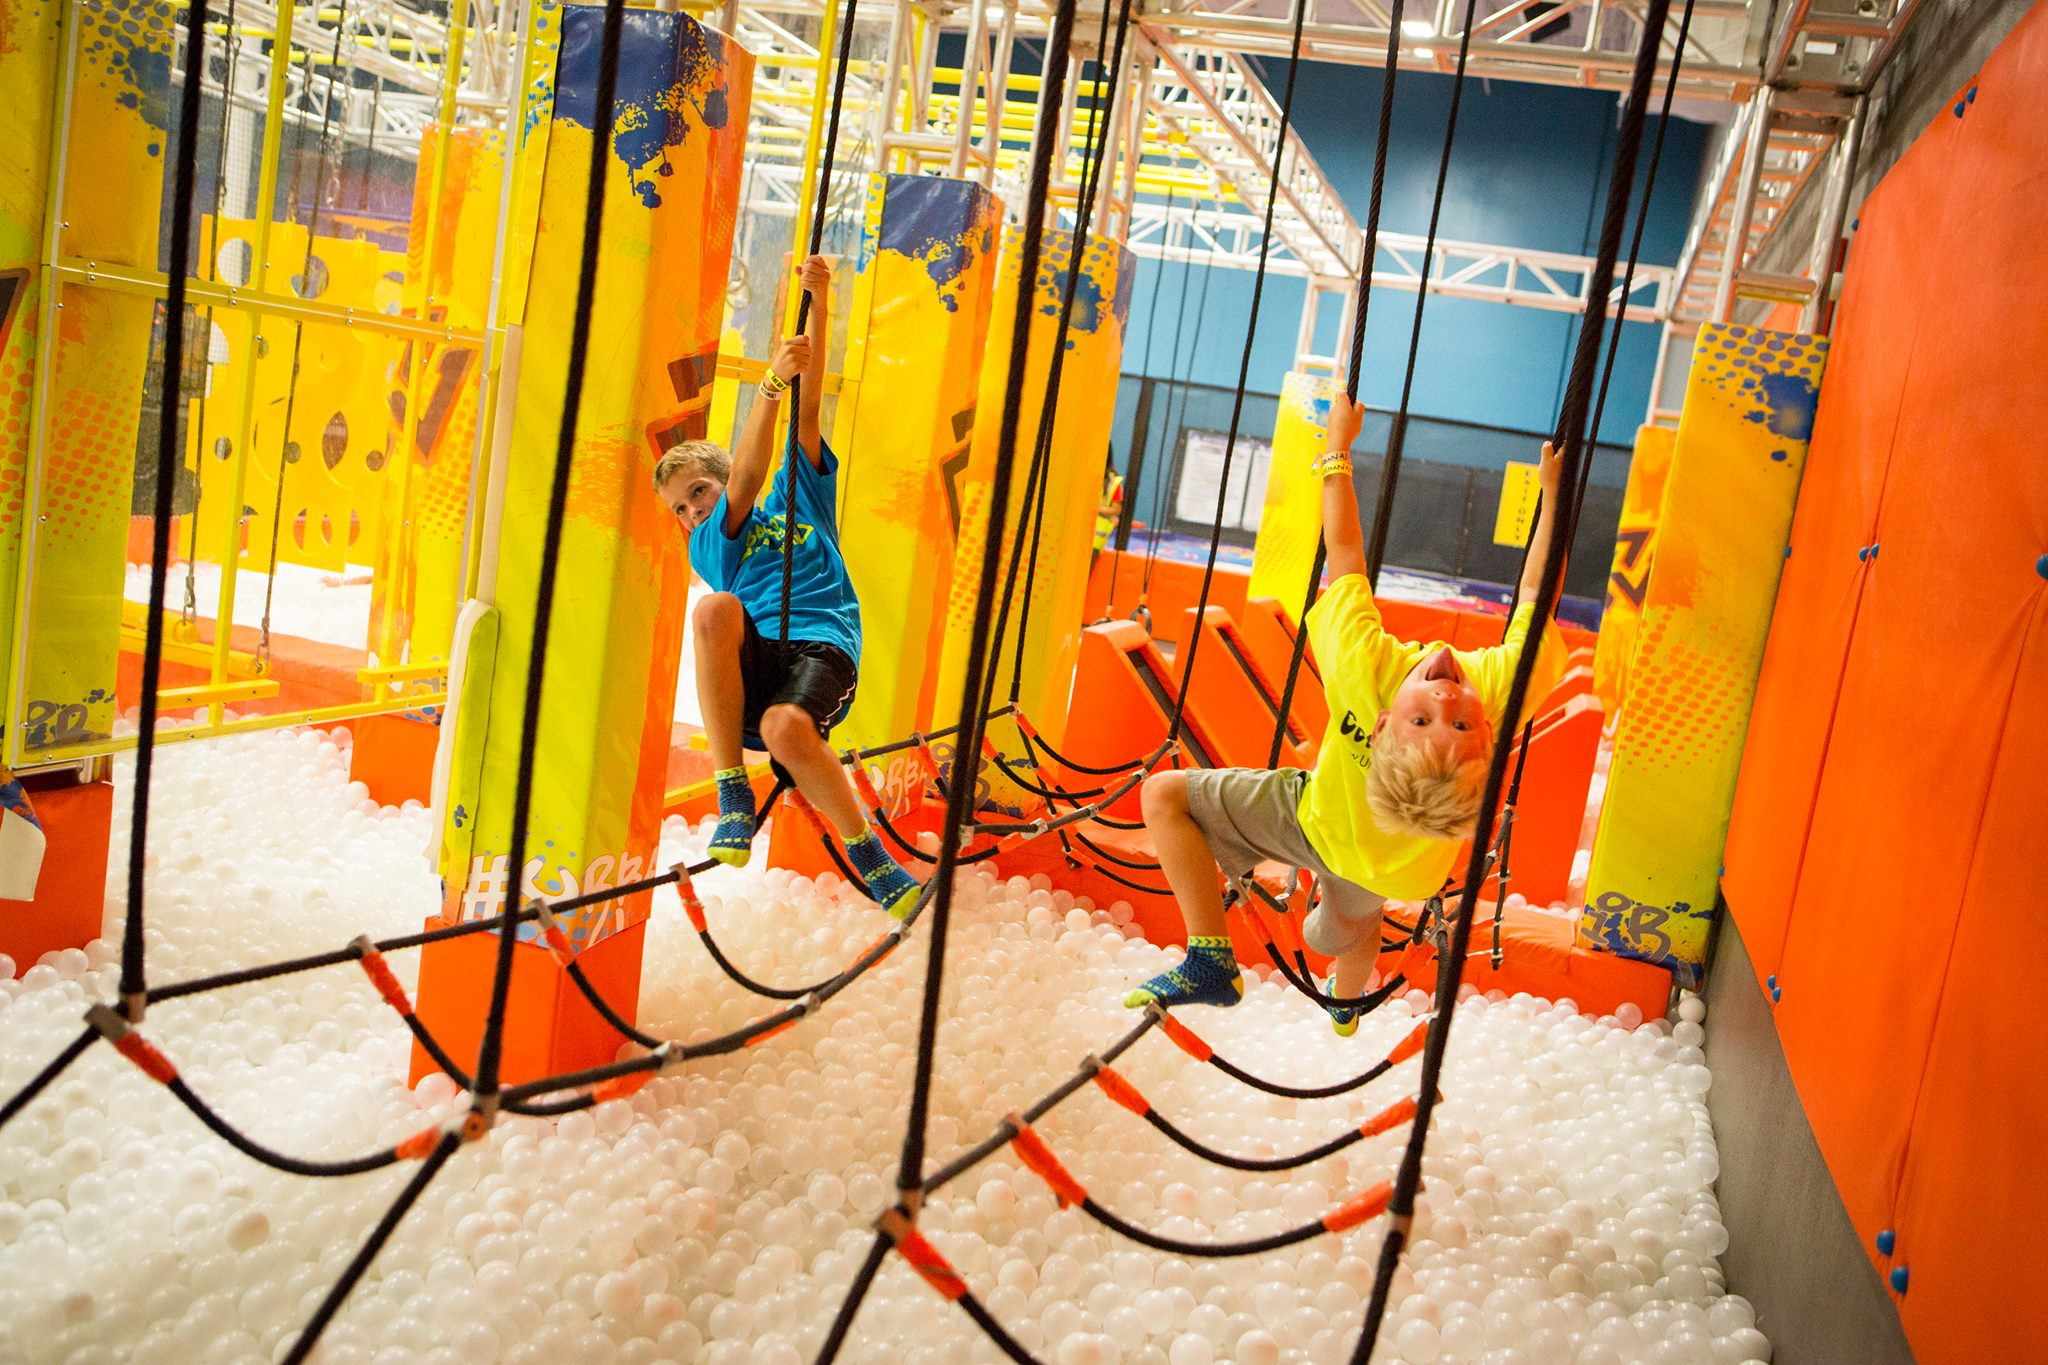 Win Free Jumping For A Year At The Grand Opening Of Urban